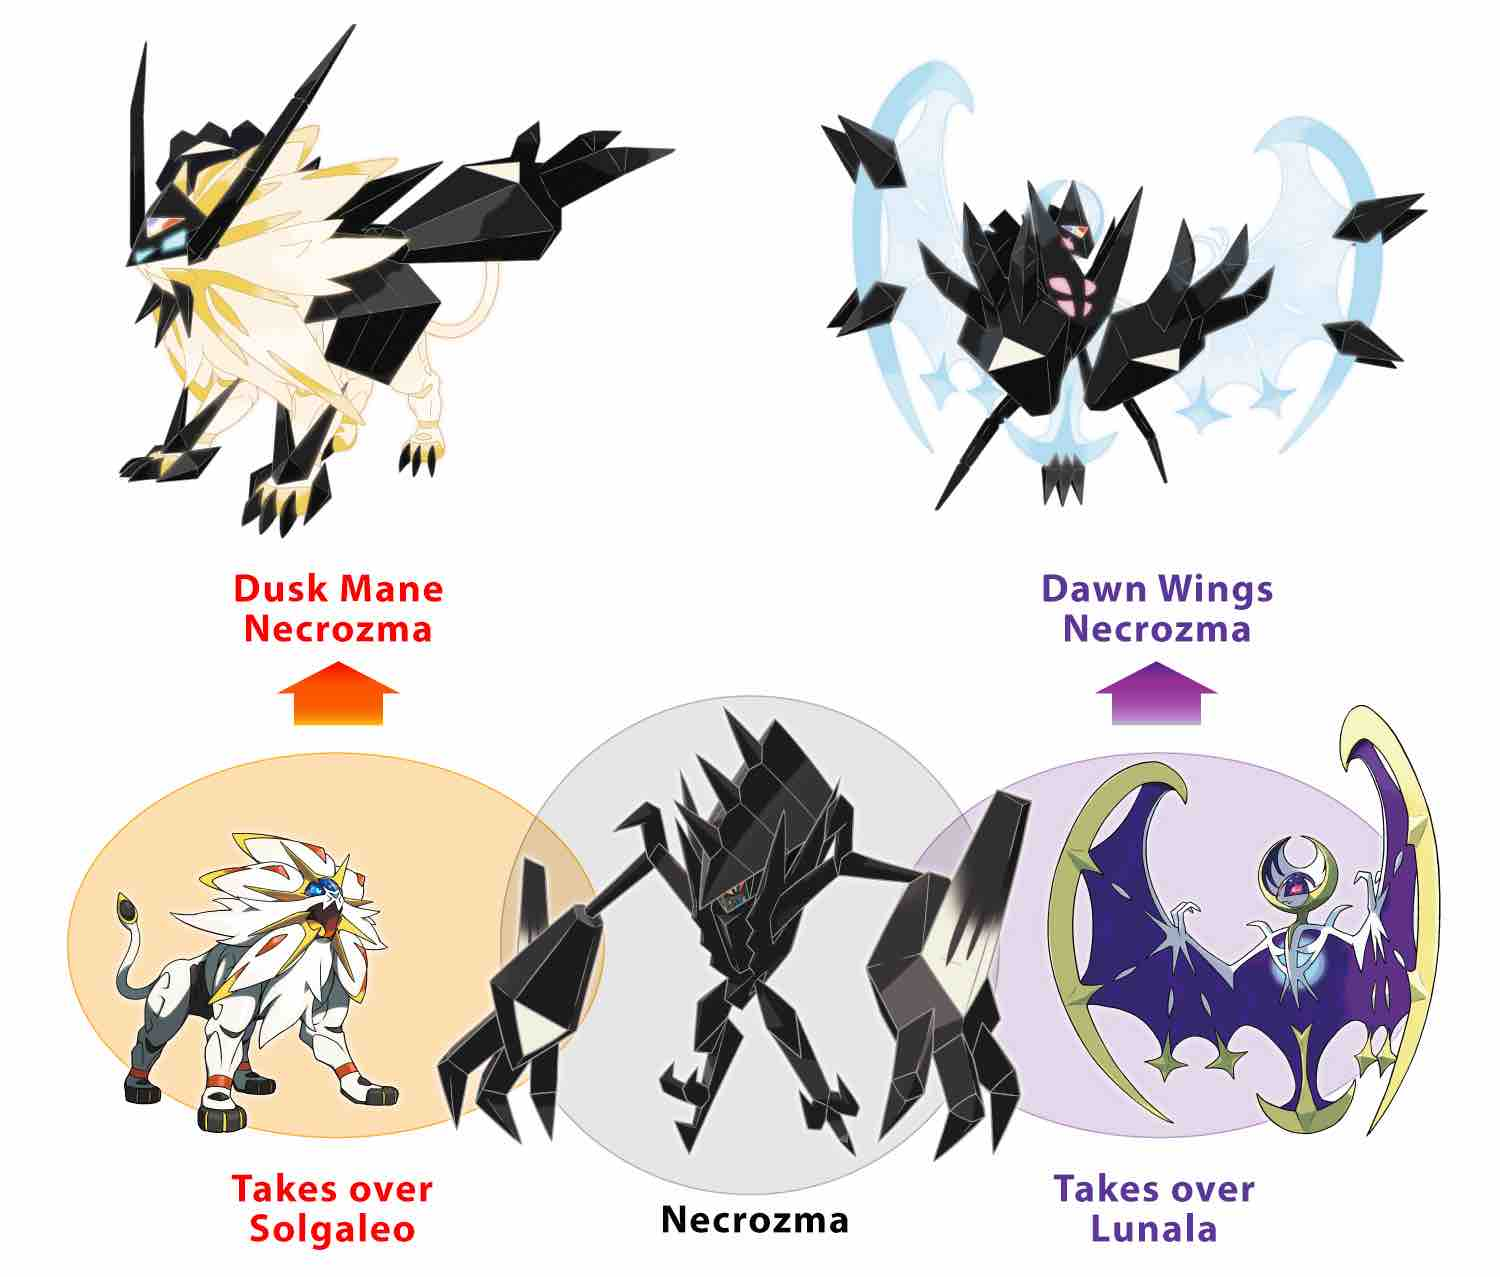 dusk-mane-necrozma-dawn-wings-necrozma-diagram